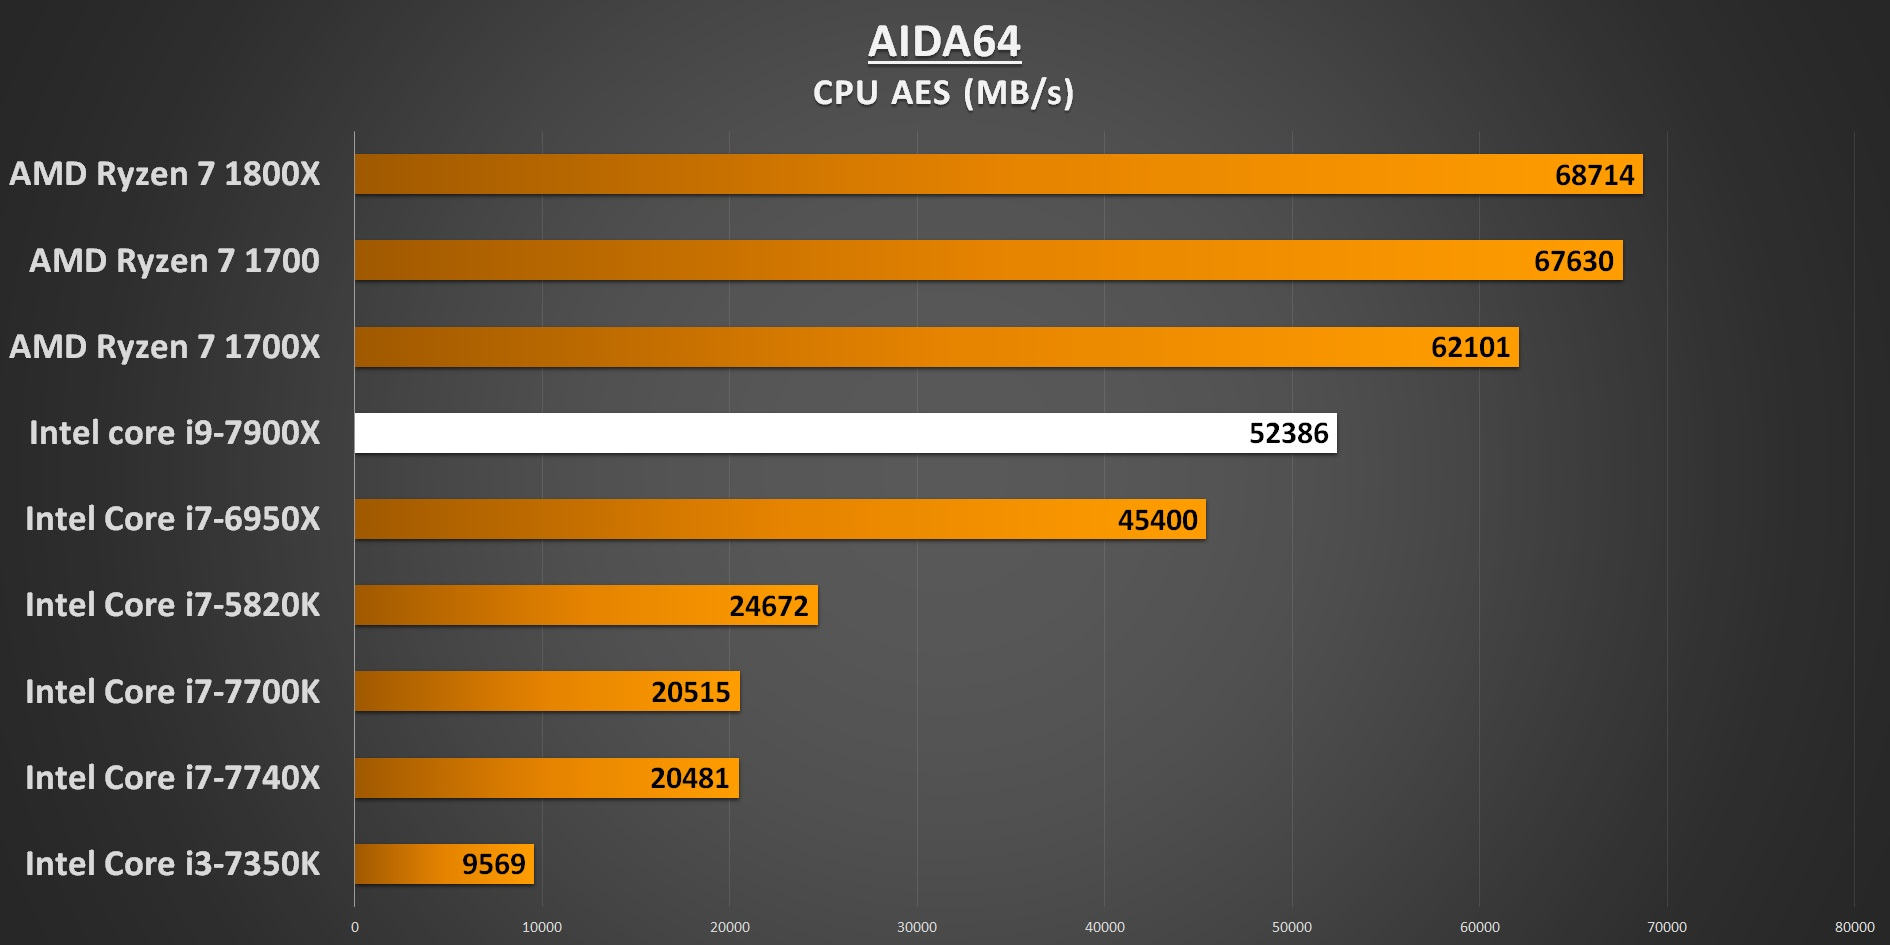 AIDA64 CPU AES 7900X Performance